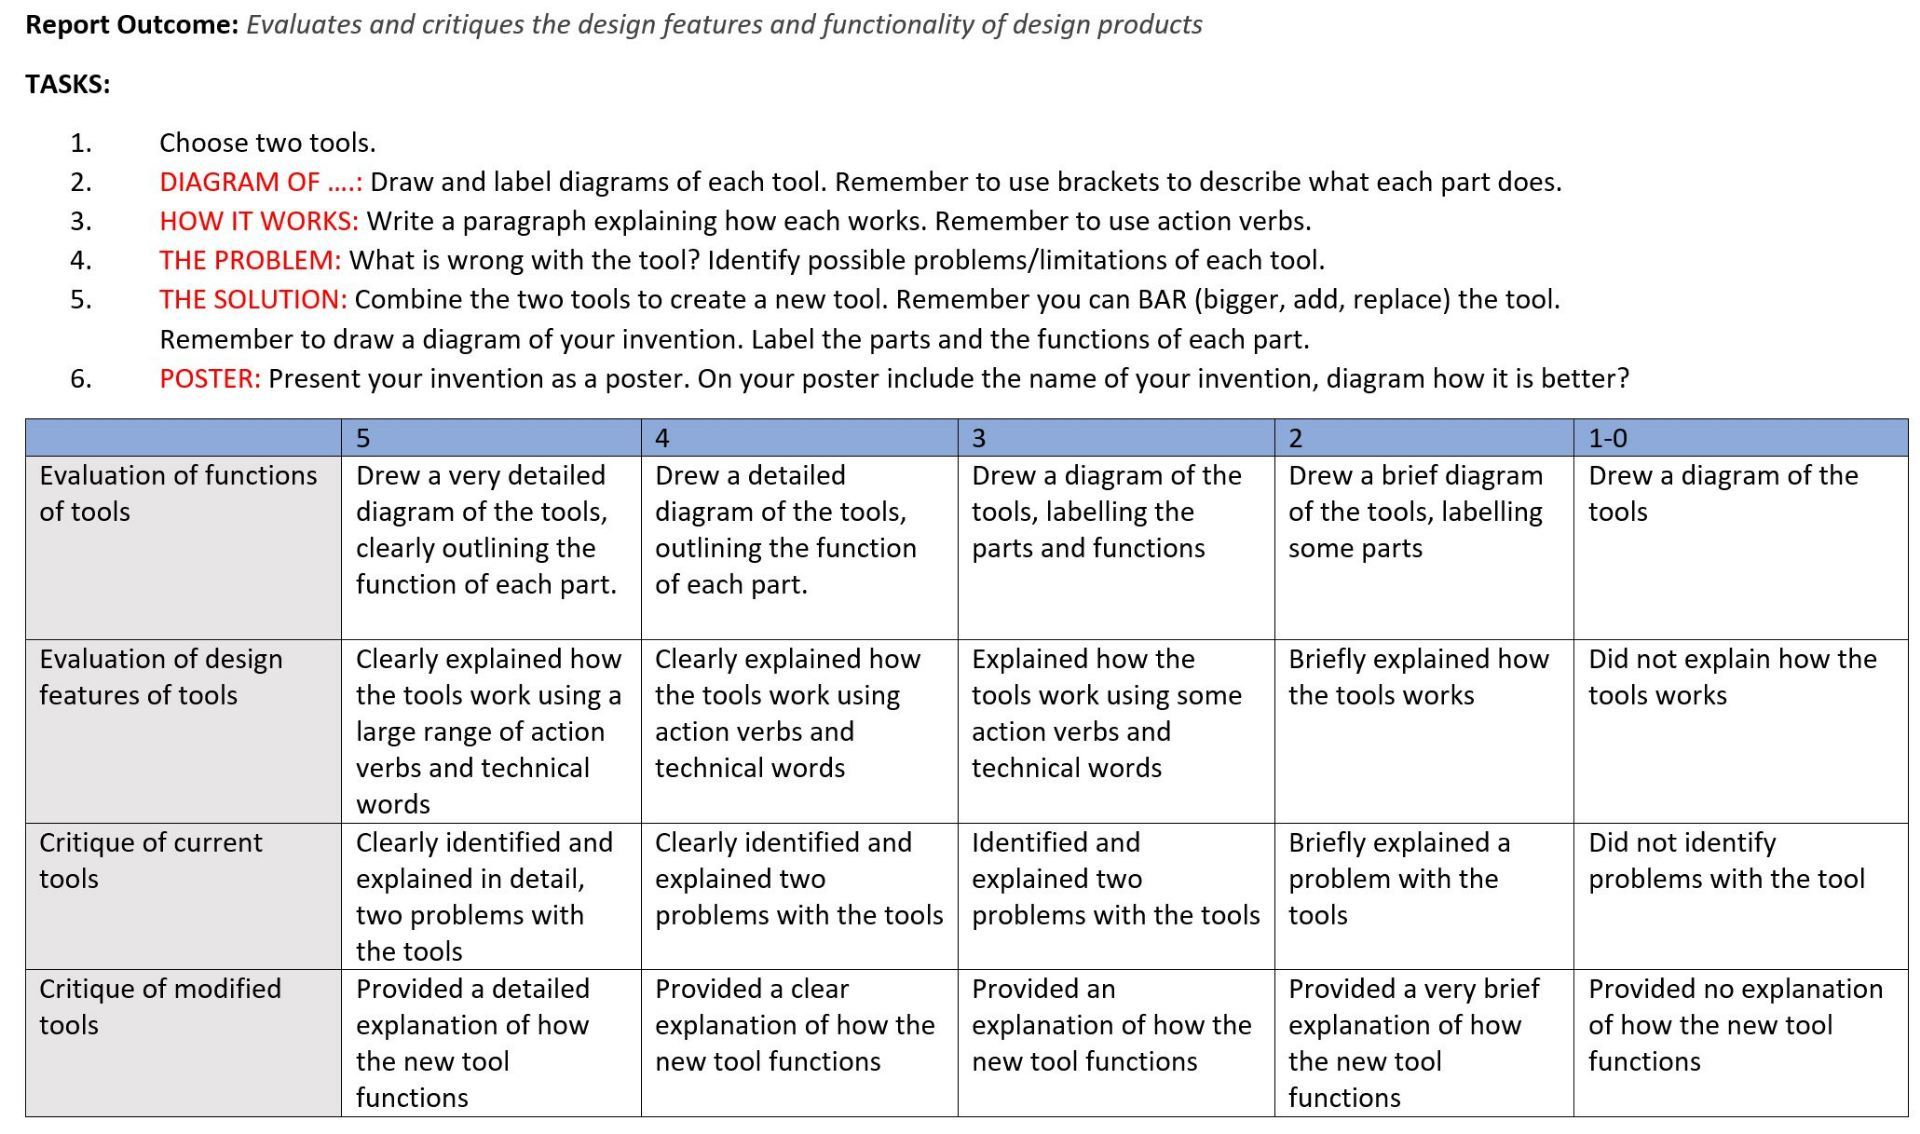 How to write a design technologies assessment rubric inter tech assessment rubric ideas jvillis 1dxbjar ccuart Image collections